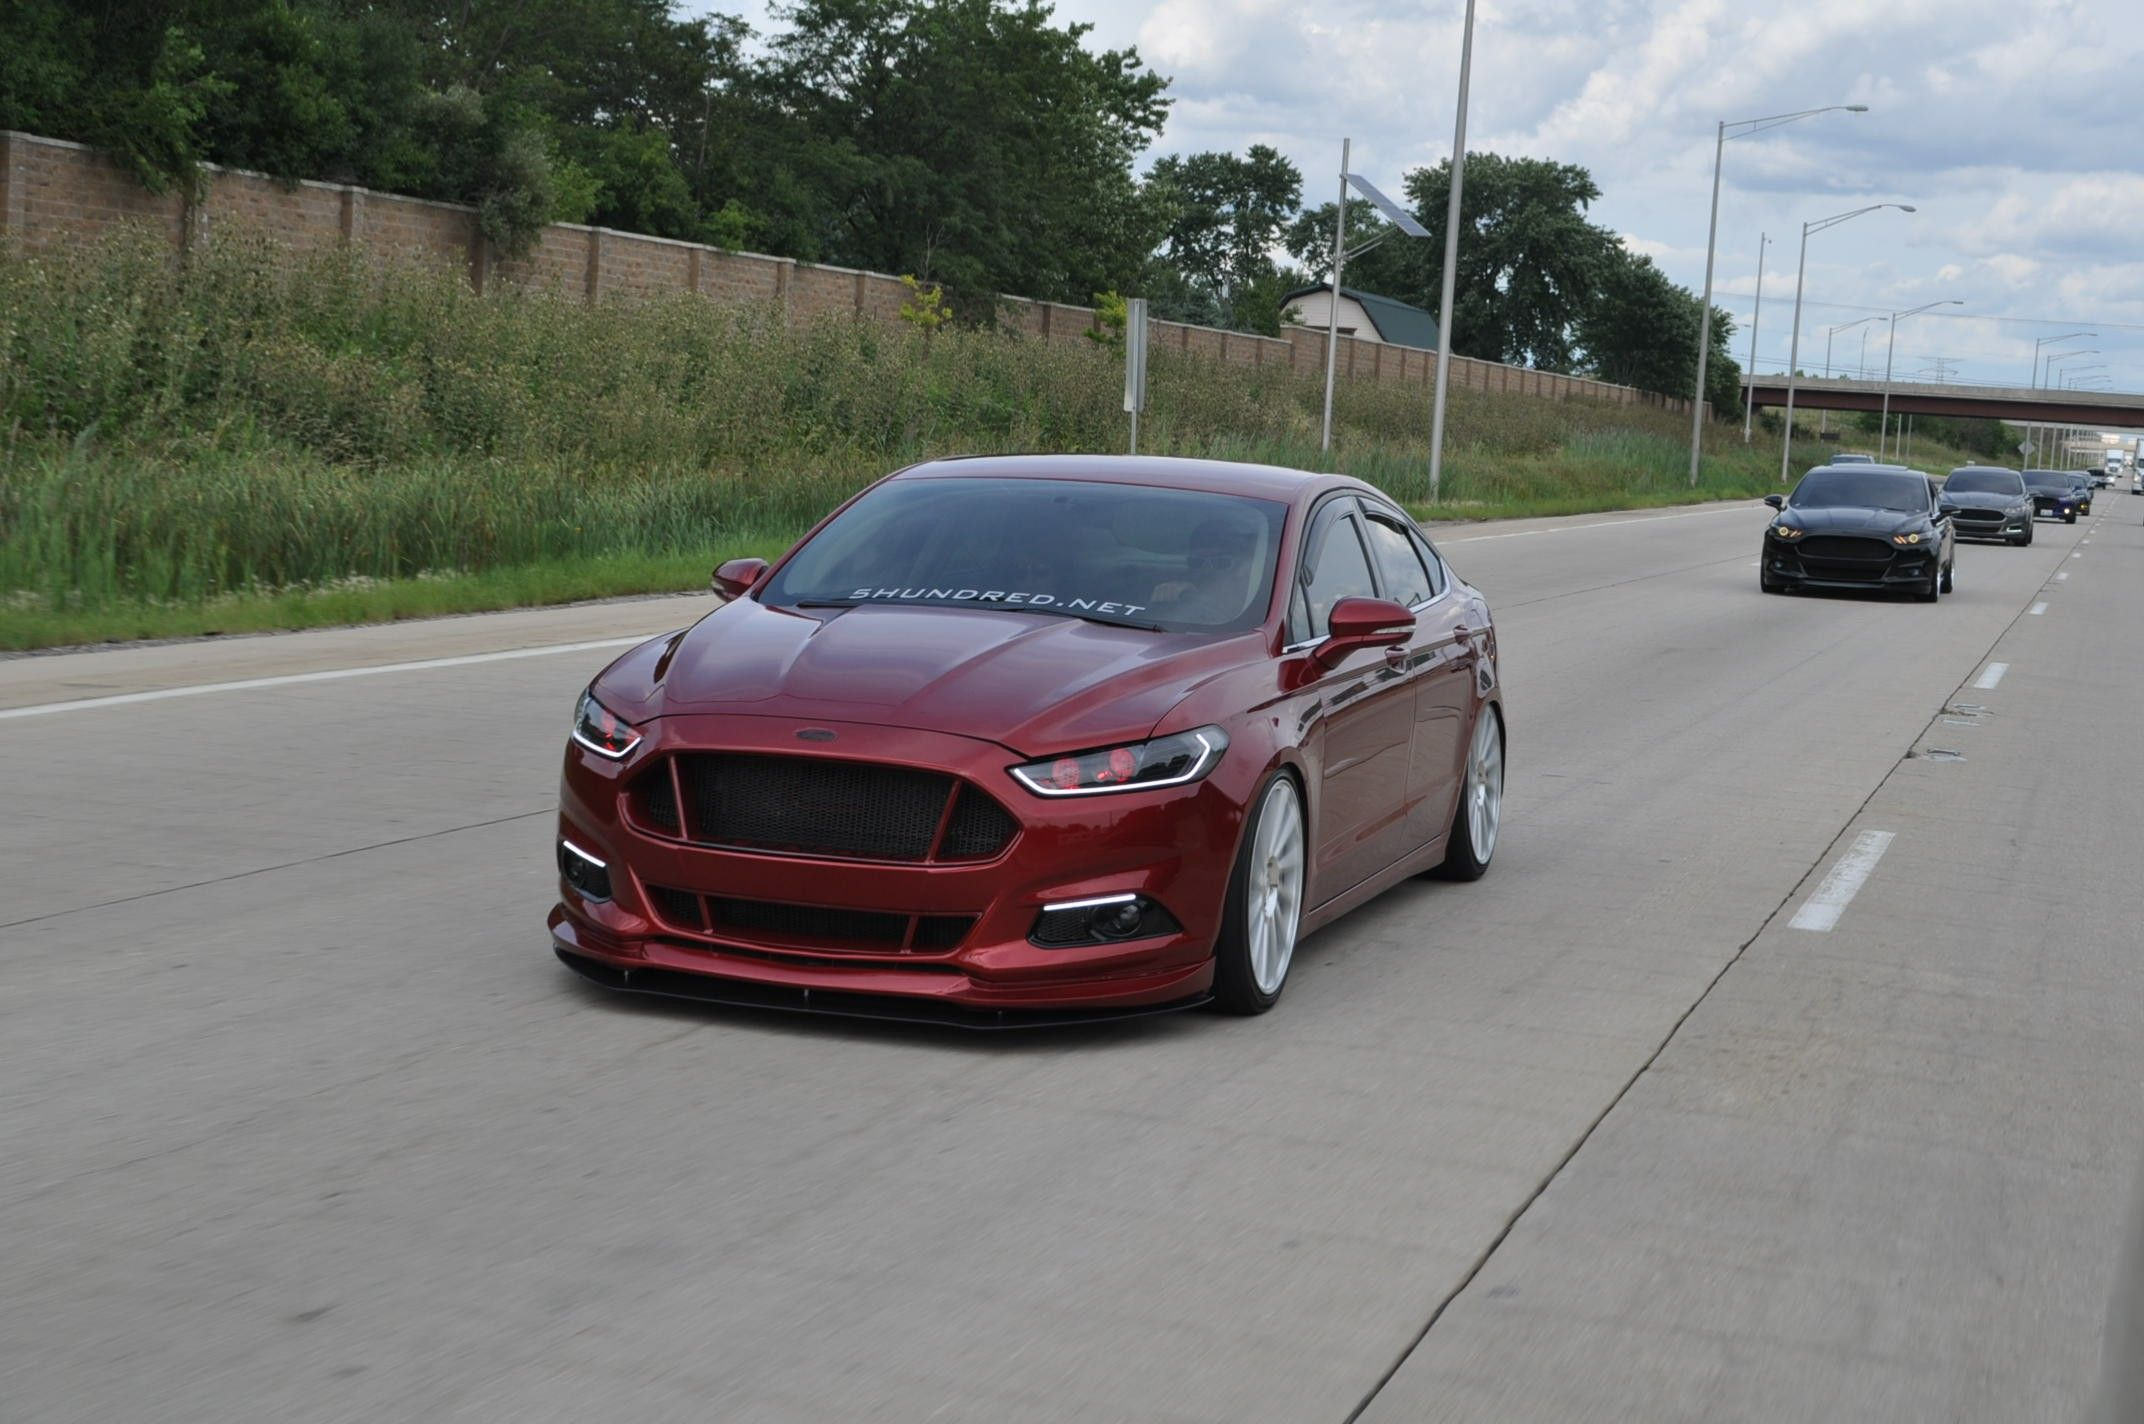 2gfusion Fusionnation 5hundreddesigns Airliftperformance